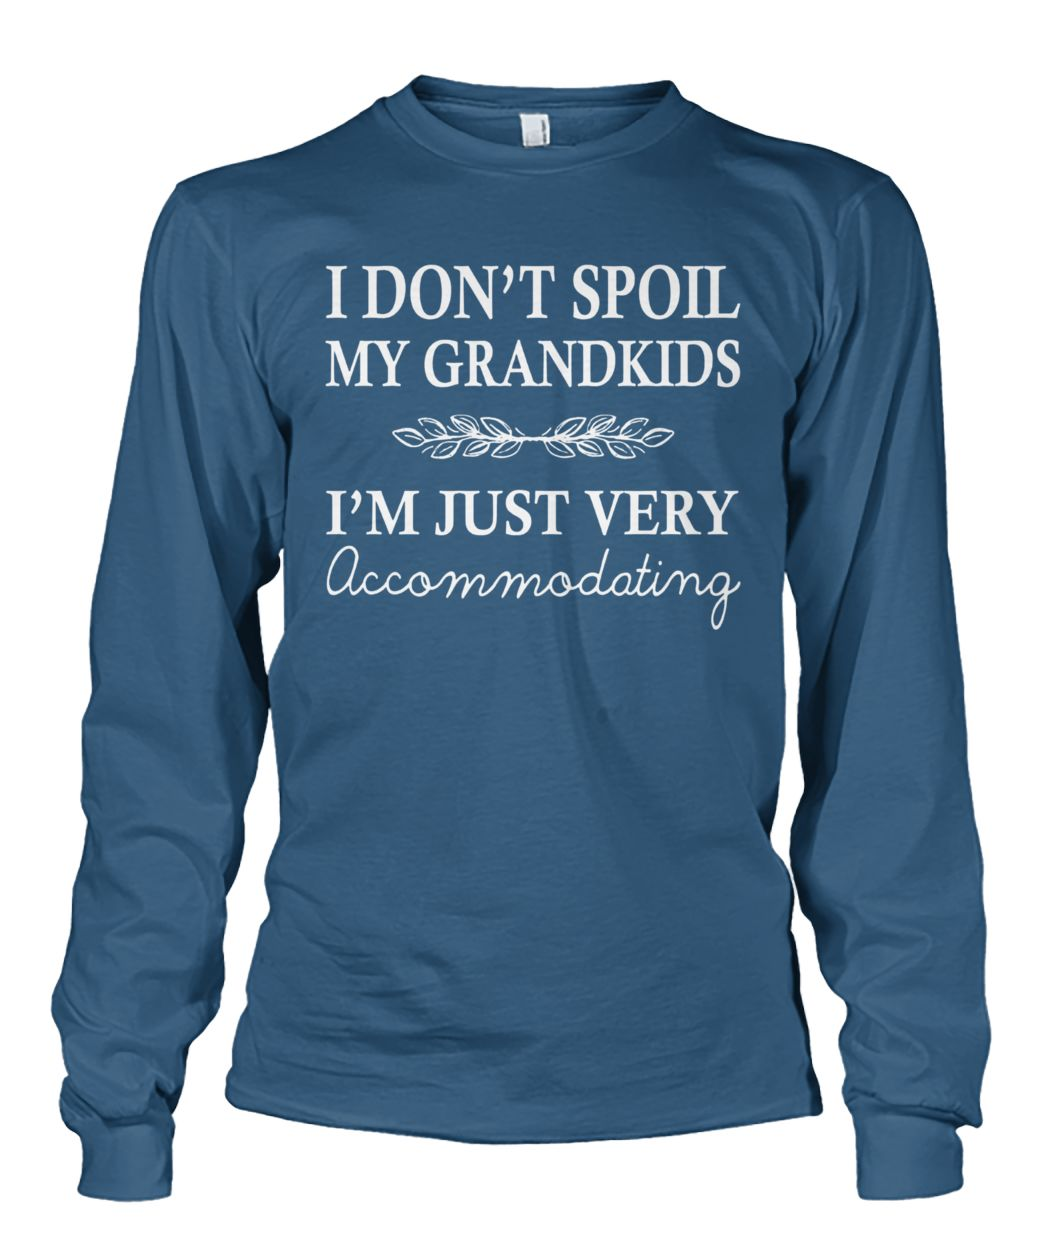 I don't spoil my grandkids I'm just very accommodating unisex long sleeve